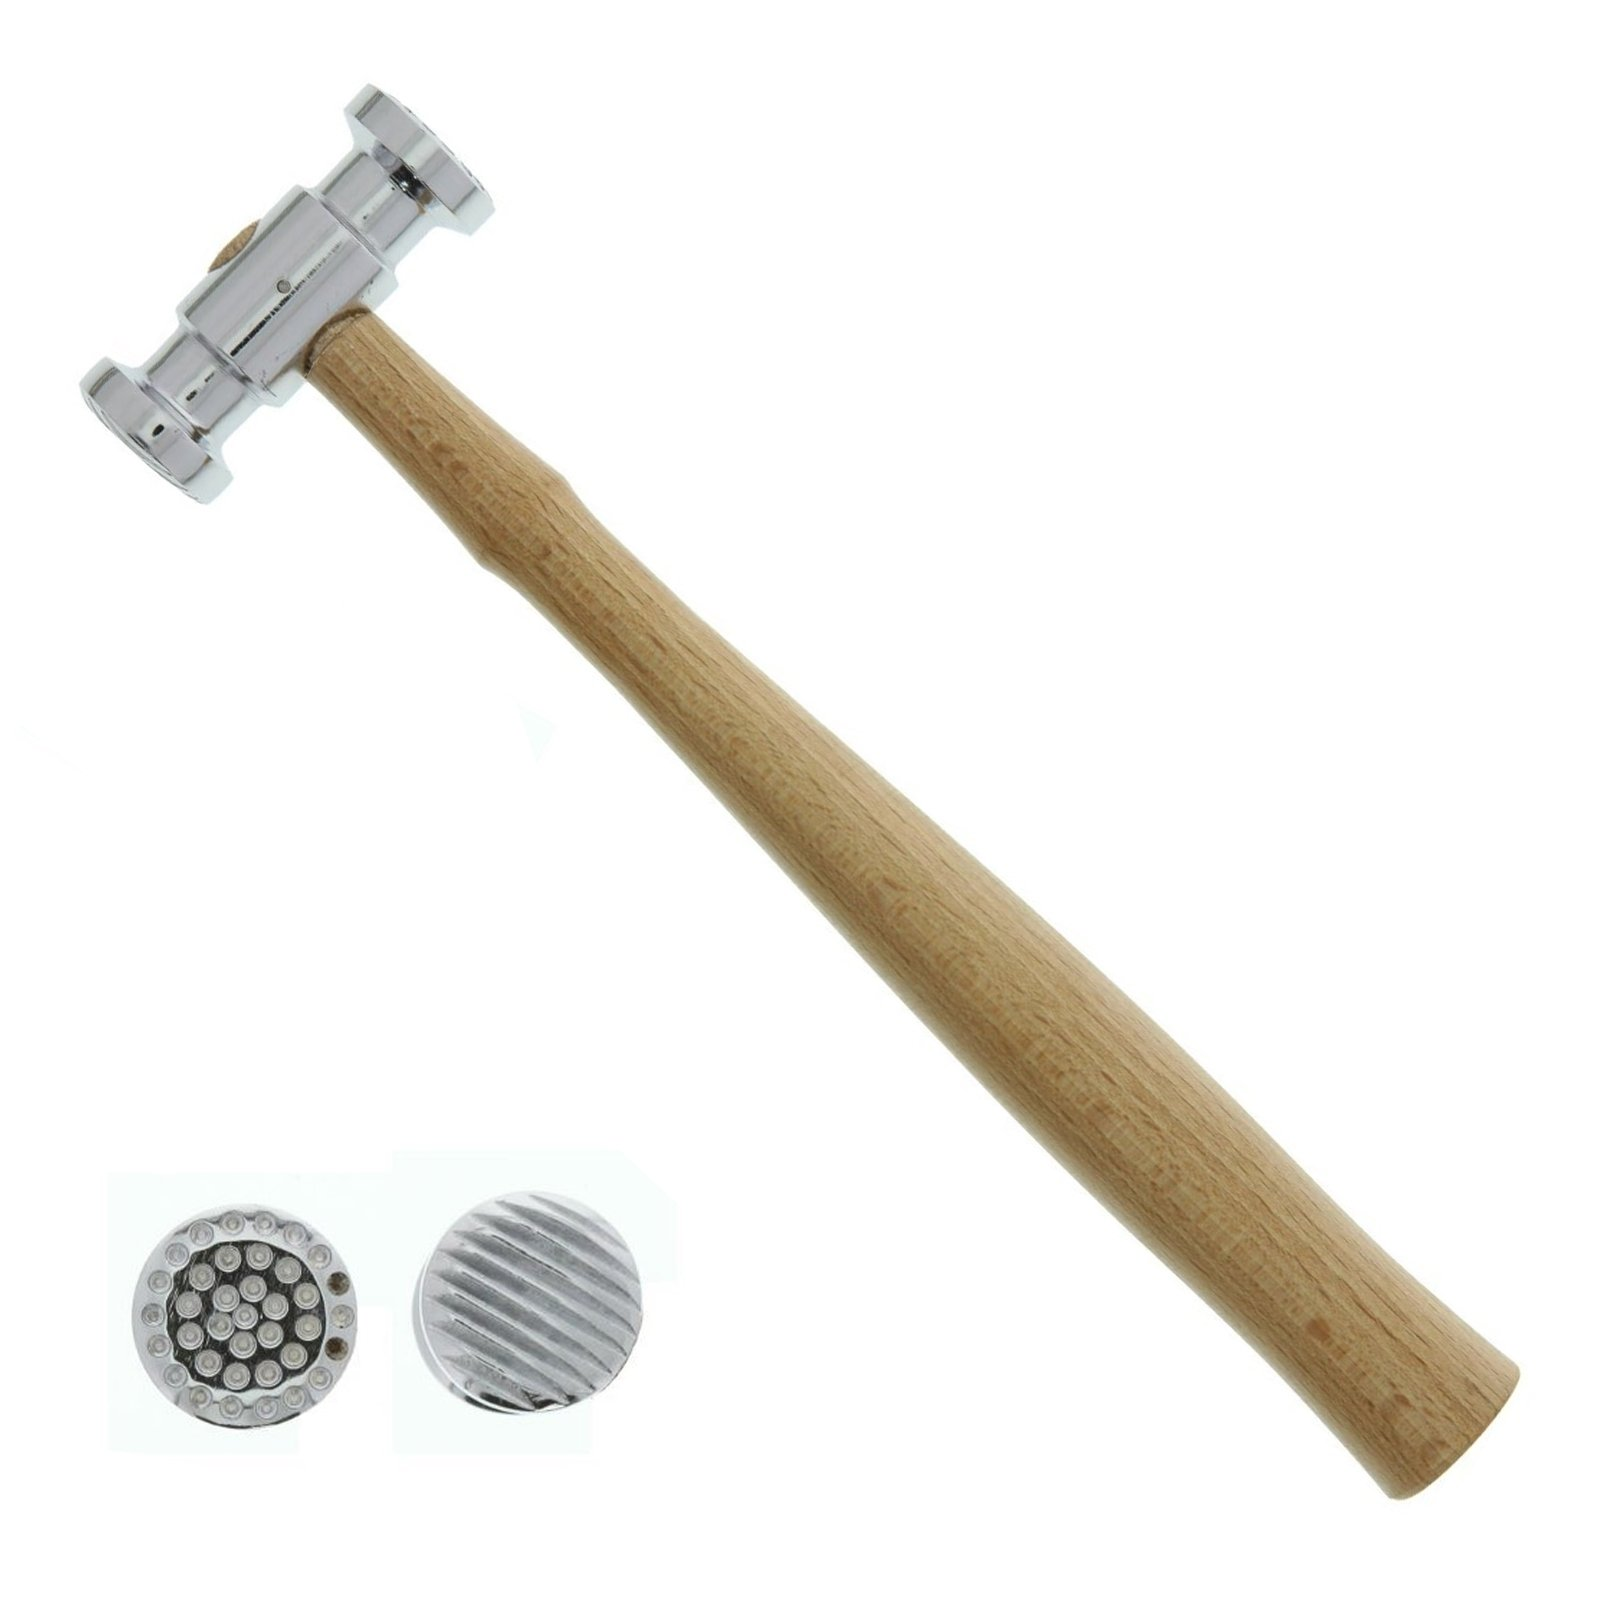 Universal Tool Texturising Hammer Dual Face Dimple Stripe Patterns Wooden Handle